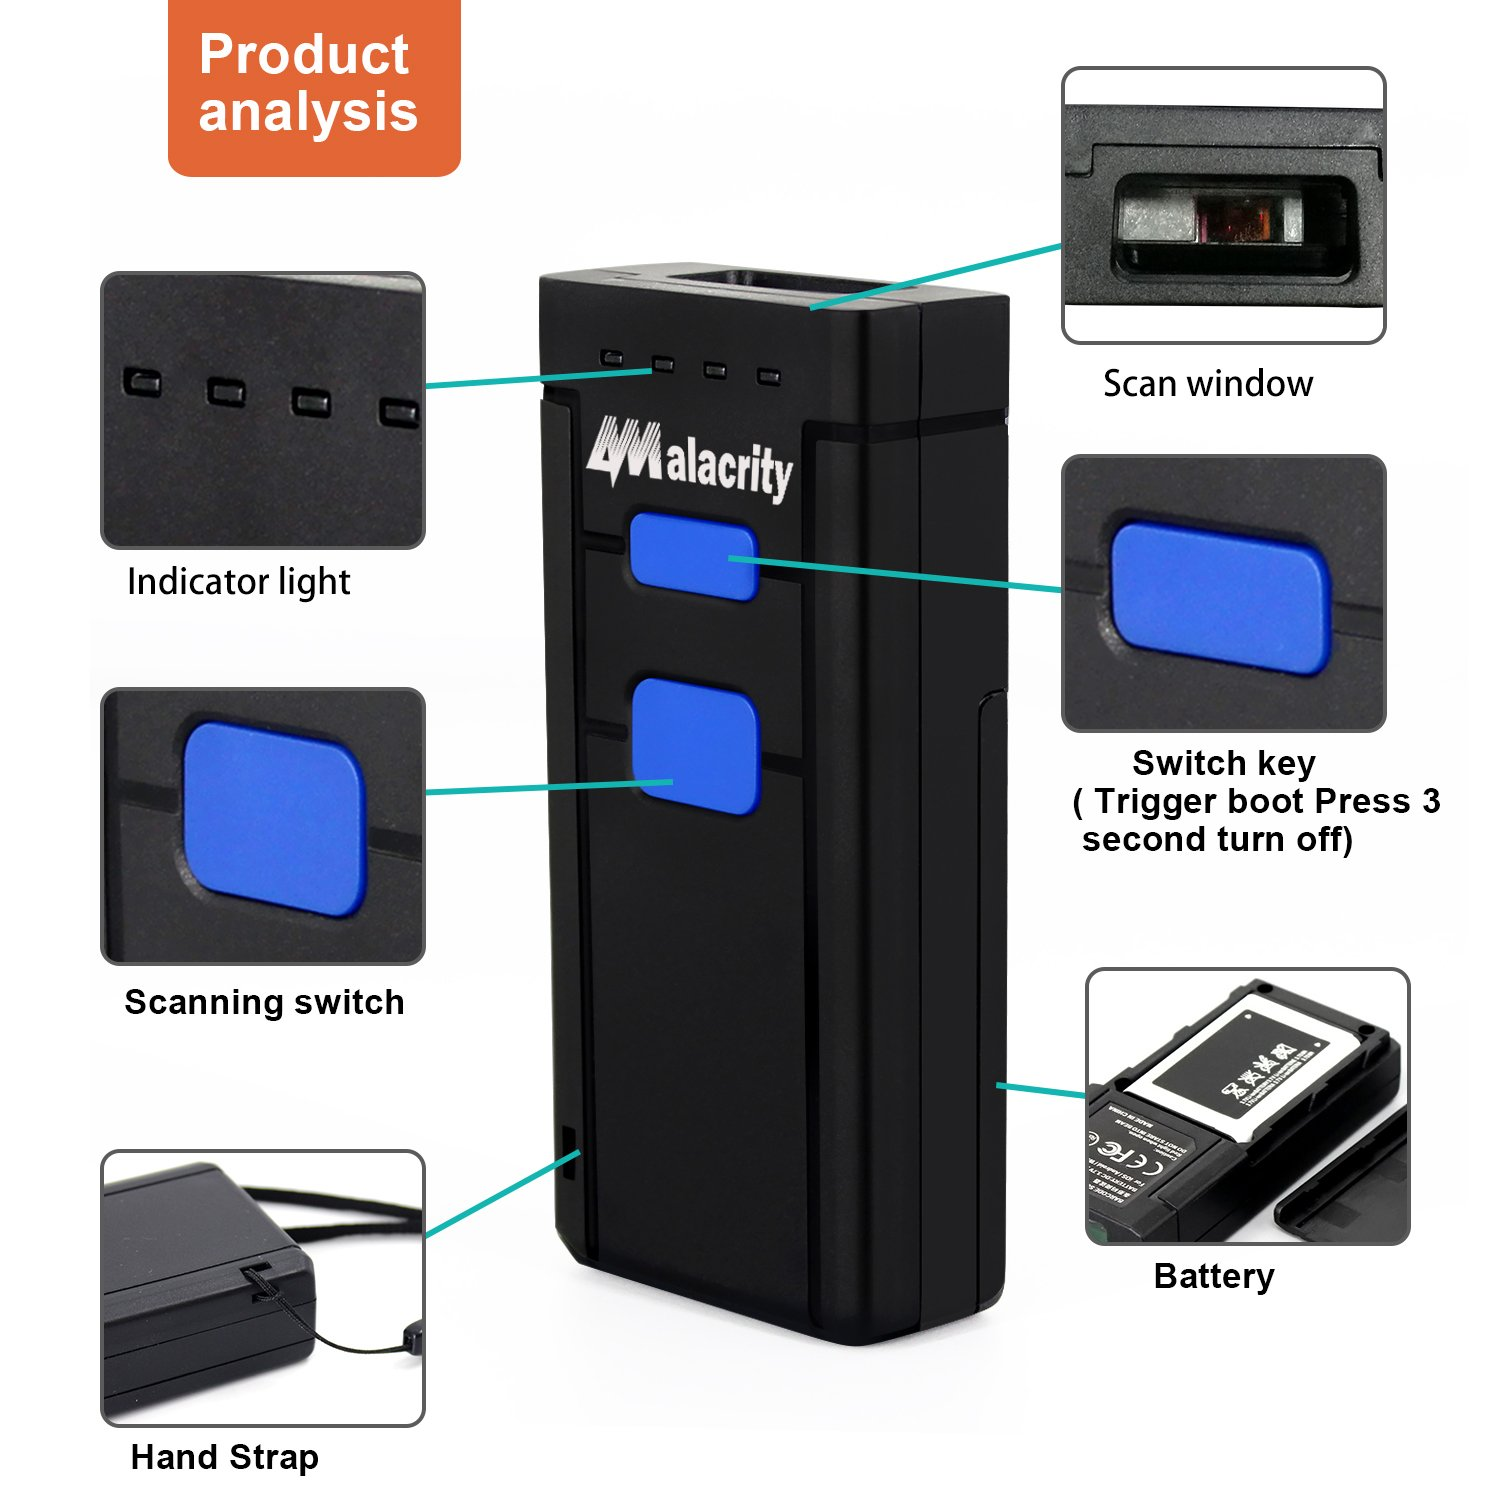 Alacrity Portable 1D and 2D BTWireless Barcode Scanner,Handheld Mini Barcode Reader for Windows,Android,iOS,Mac.Able to Scan Codes on Screen